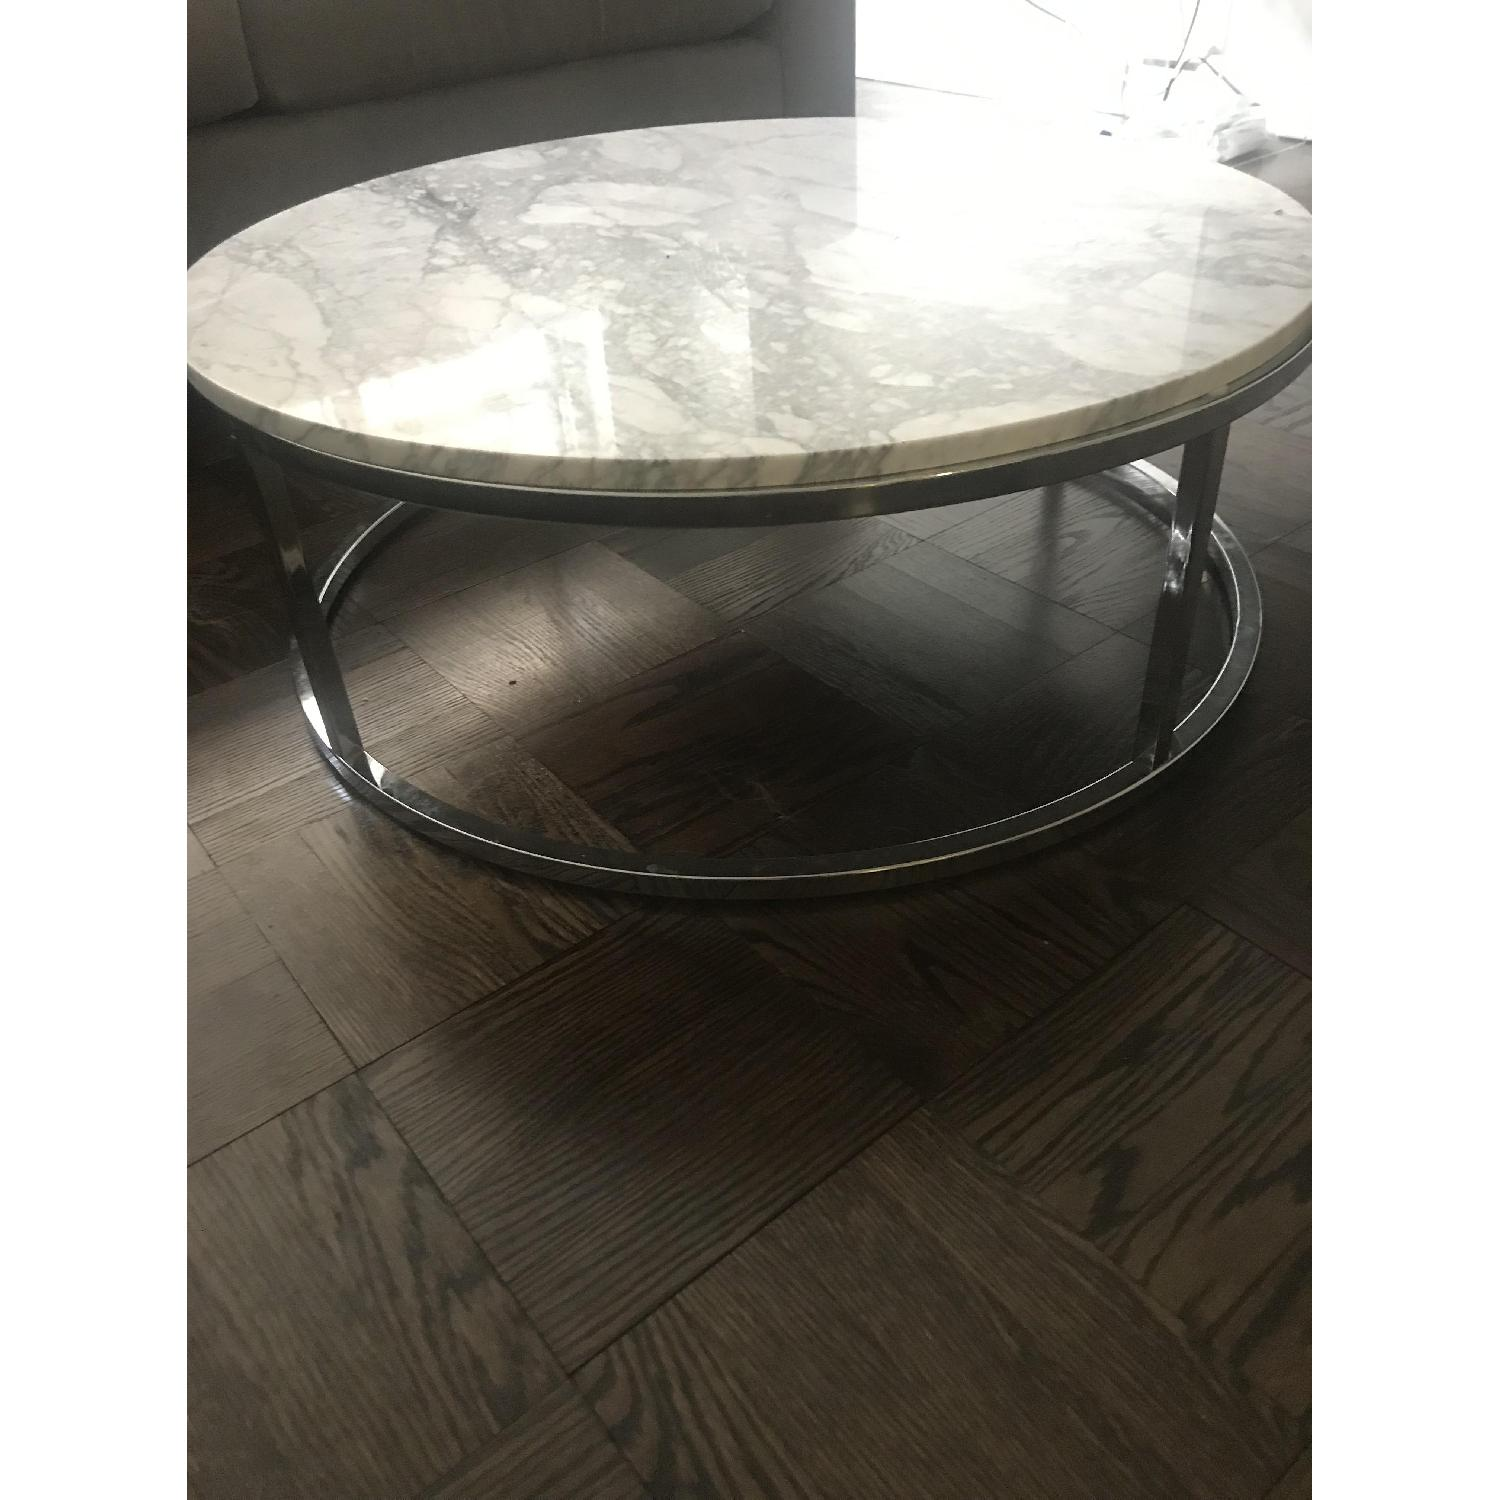 CB2 Smart Round Marble Coffee Table-2